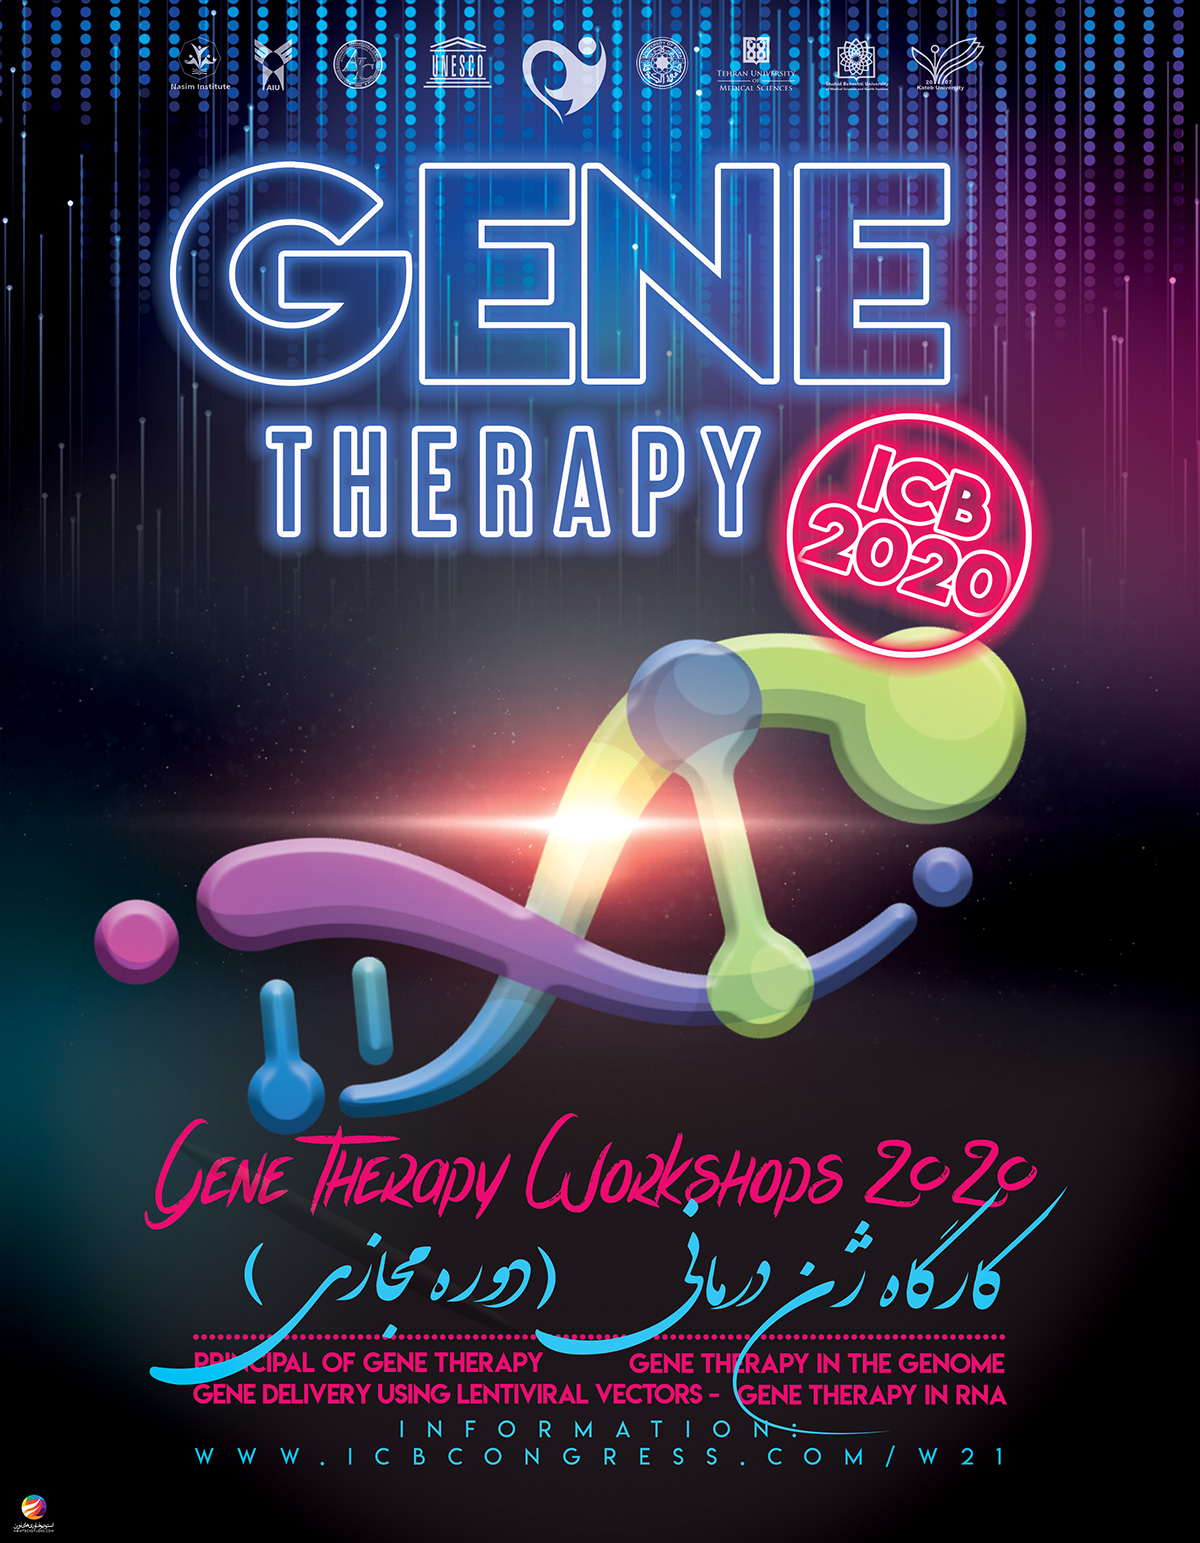 Gene Therapy Workshops